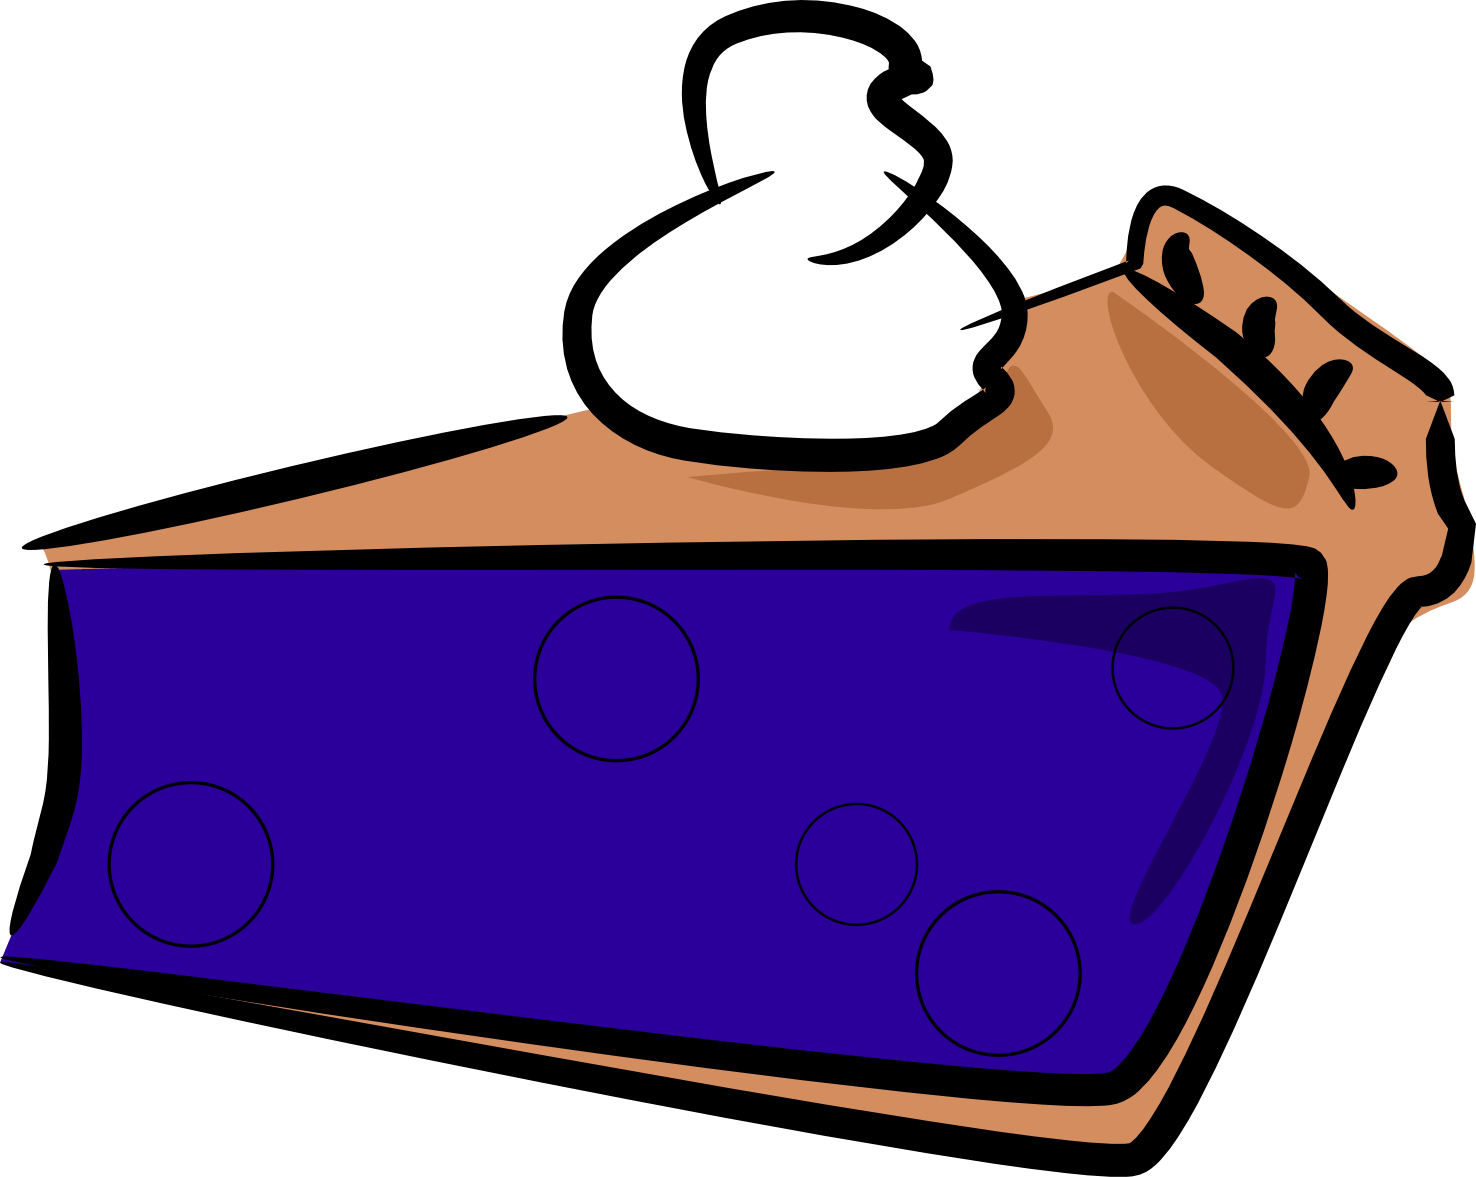 hight resolution of pie clipart free clipart clipartix